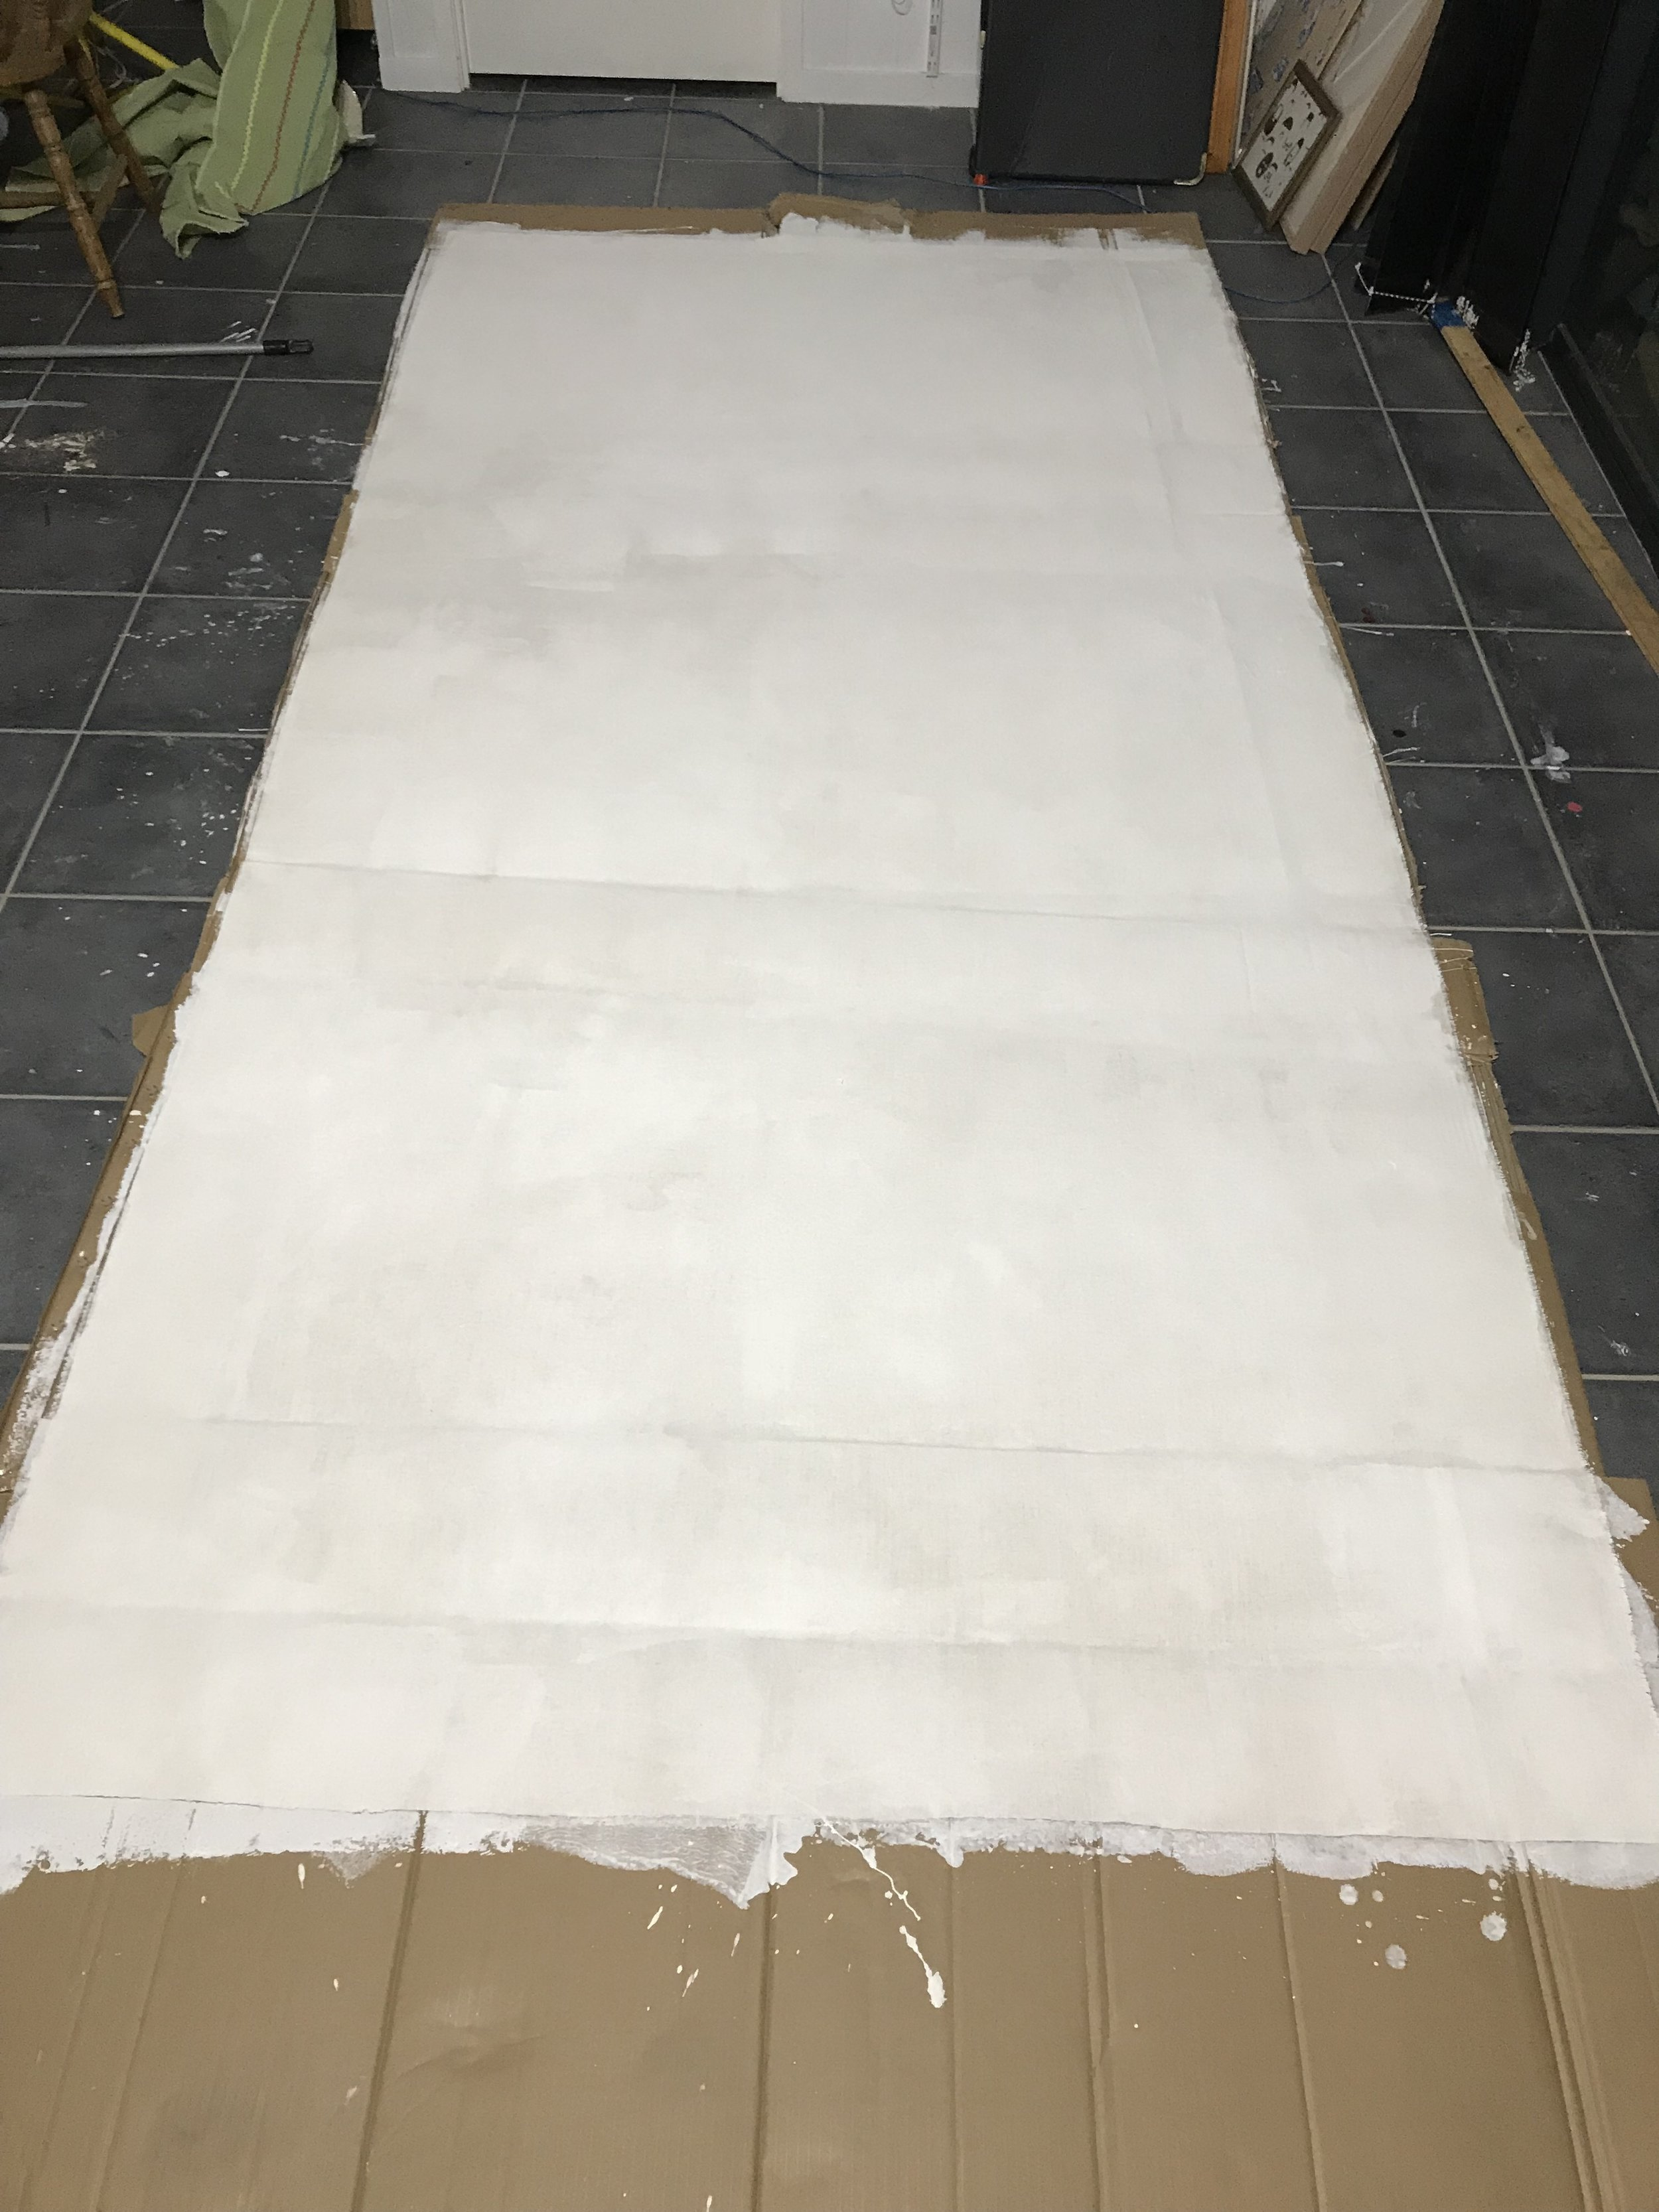 Cut a 3m piece of the linen polyester blend and started priming it.